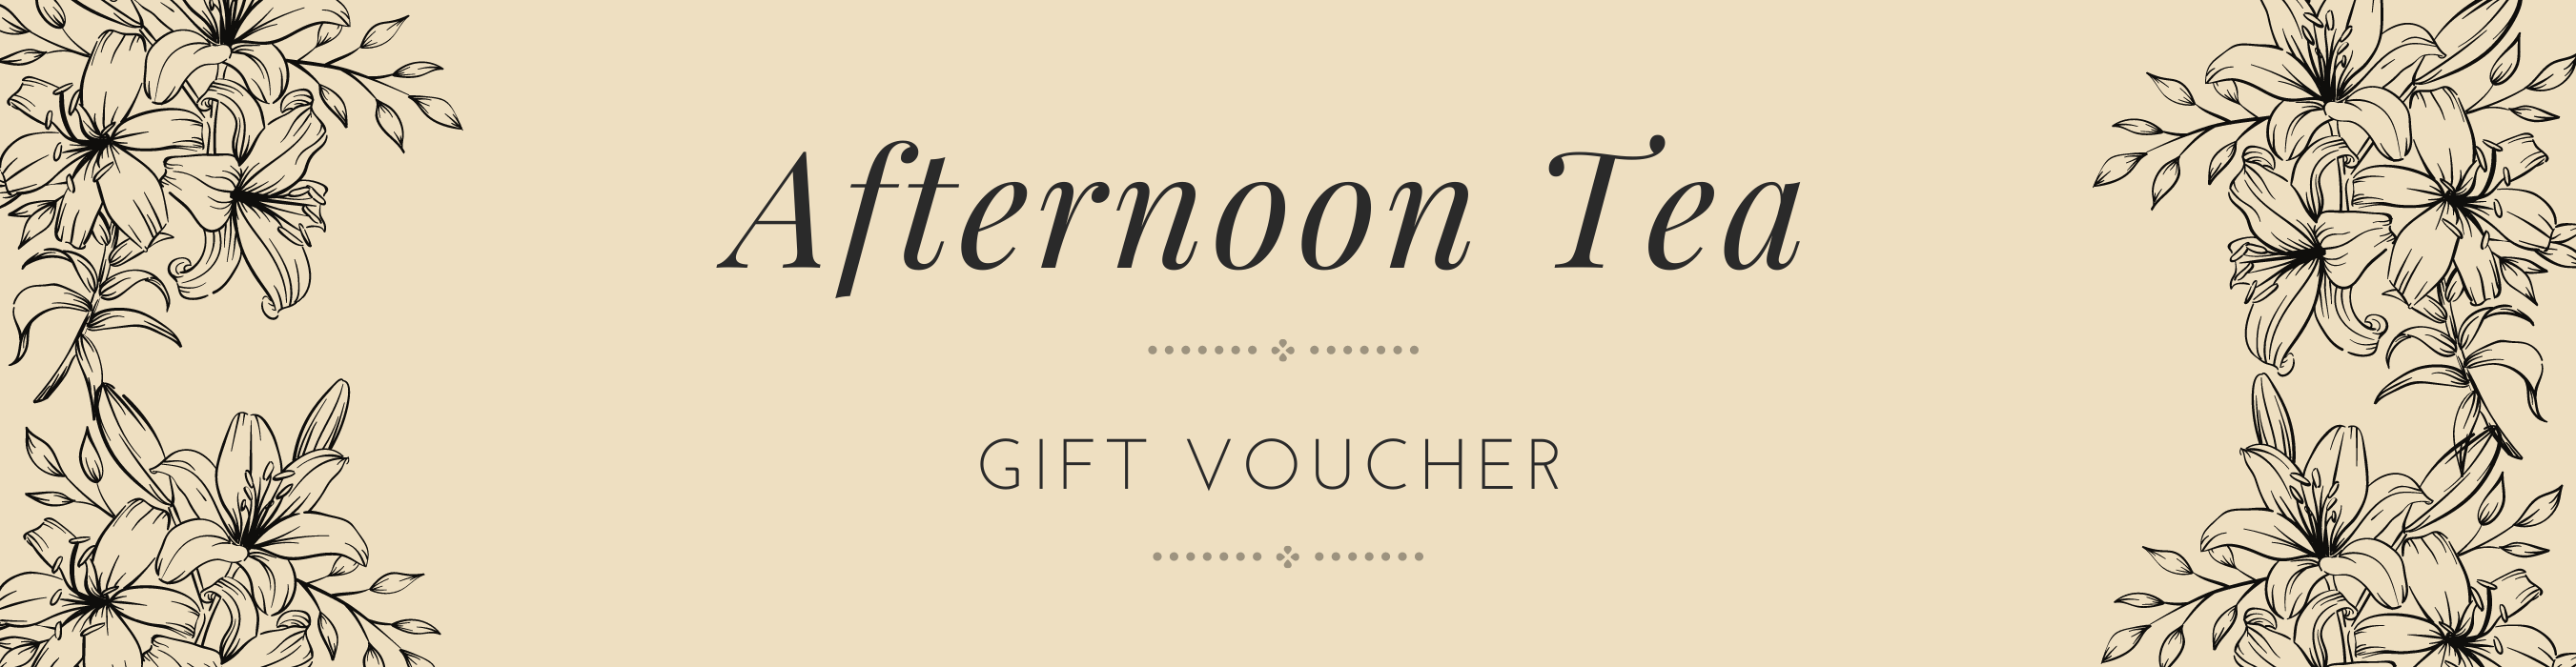 Afternoon Tea gift voucher header